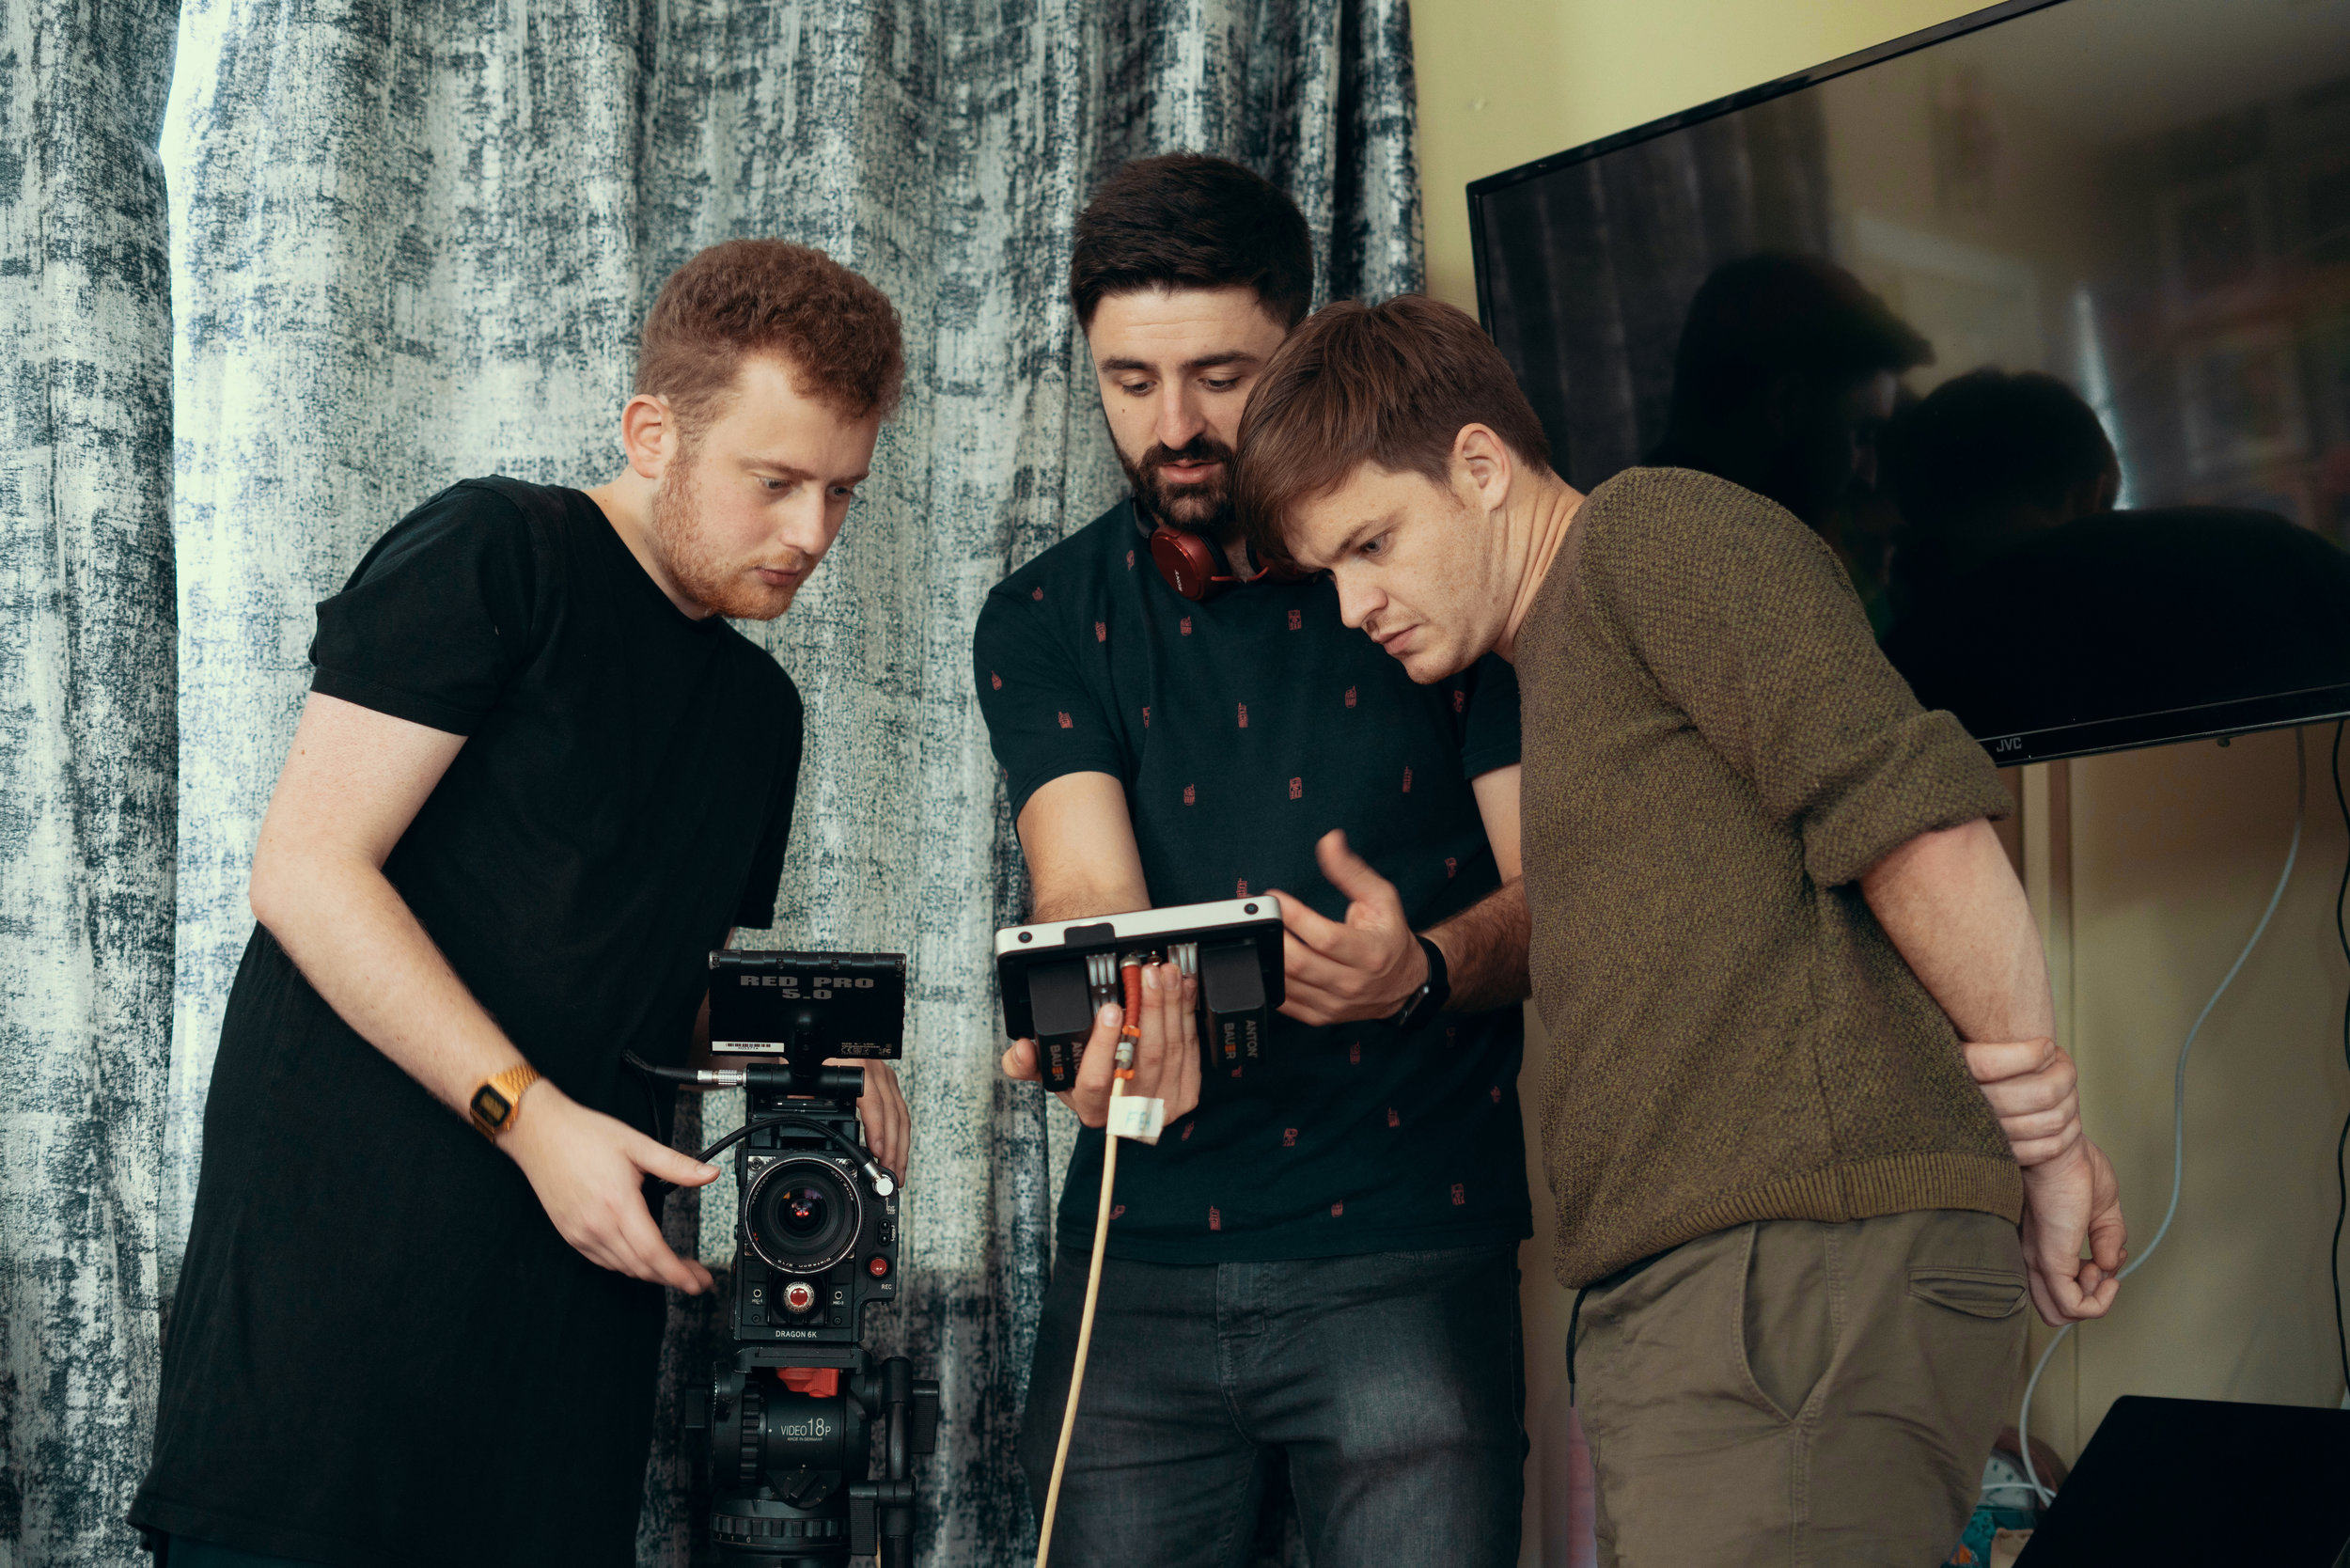 Checking the shot, BTS from a music video for Daithi.